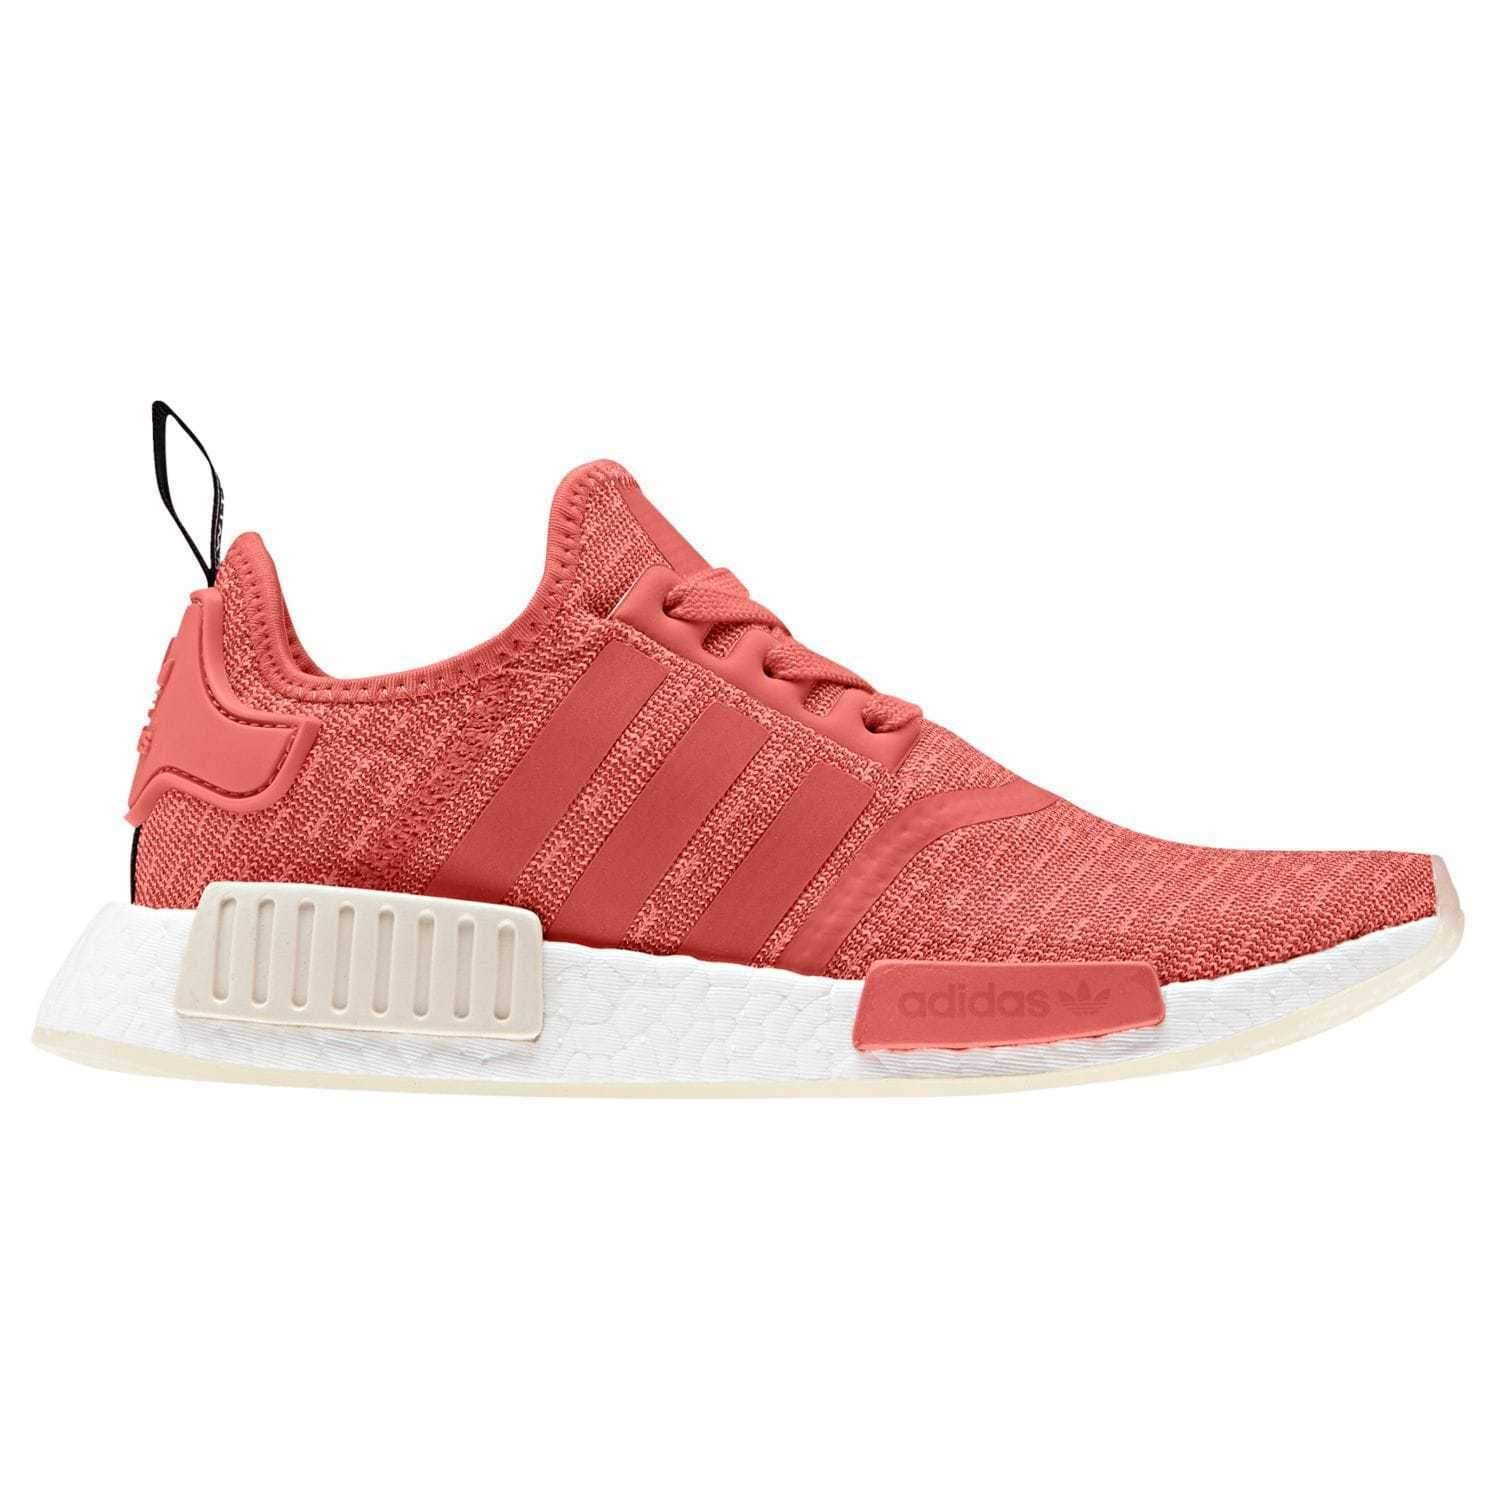 NWB Adidas Originals NMD R1 Donna Trace Scarlet/Trace Scarlet/White CQ2014 10